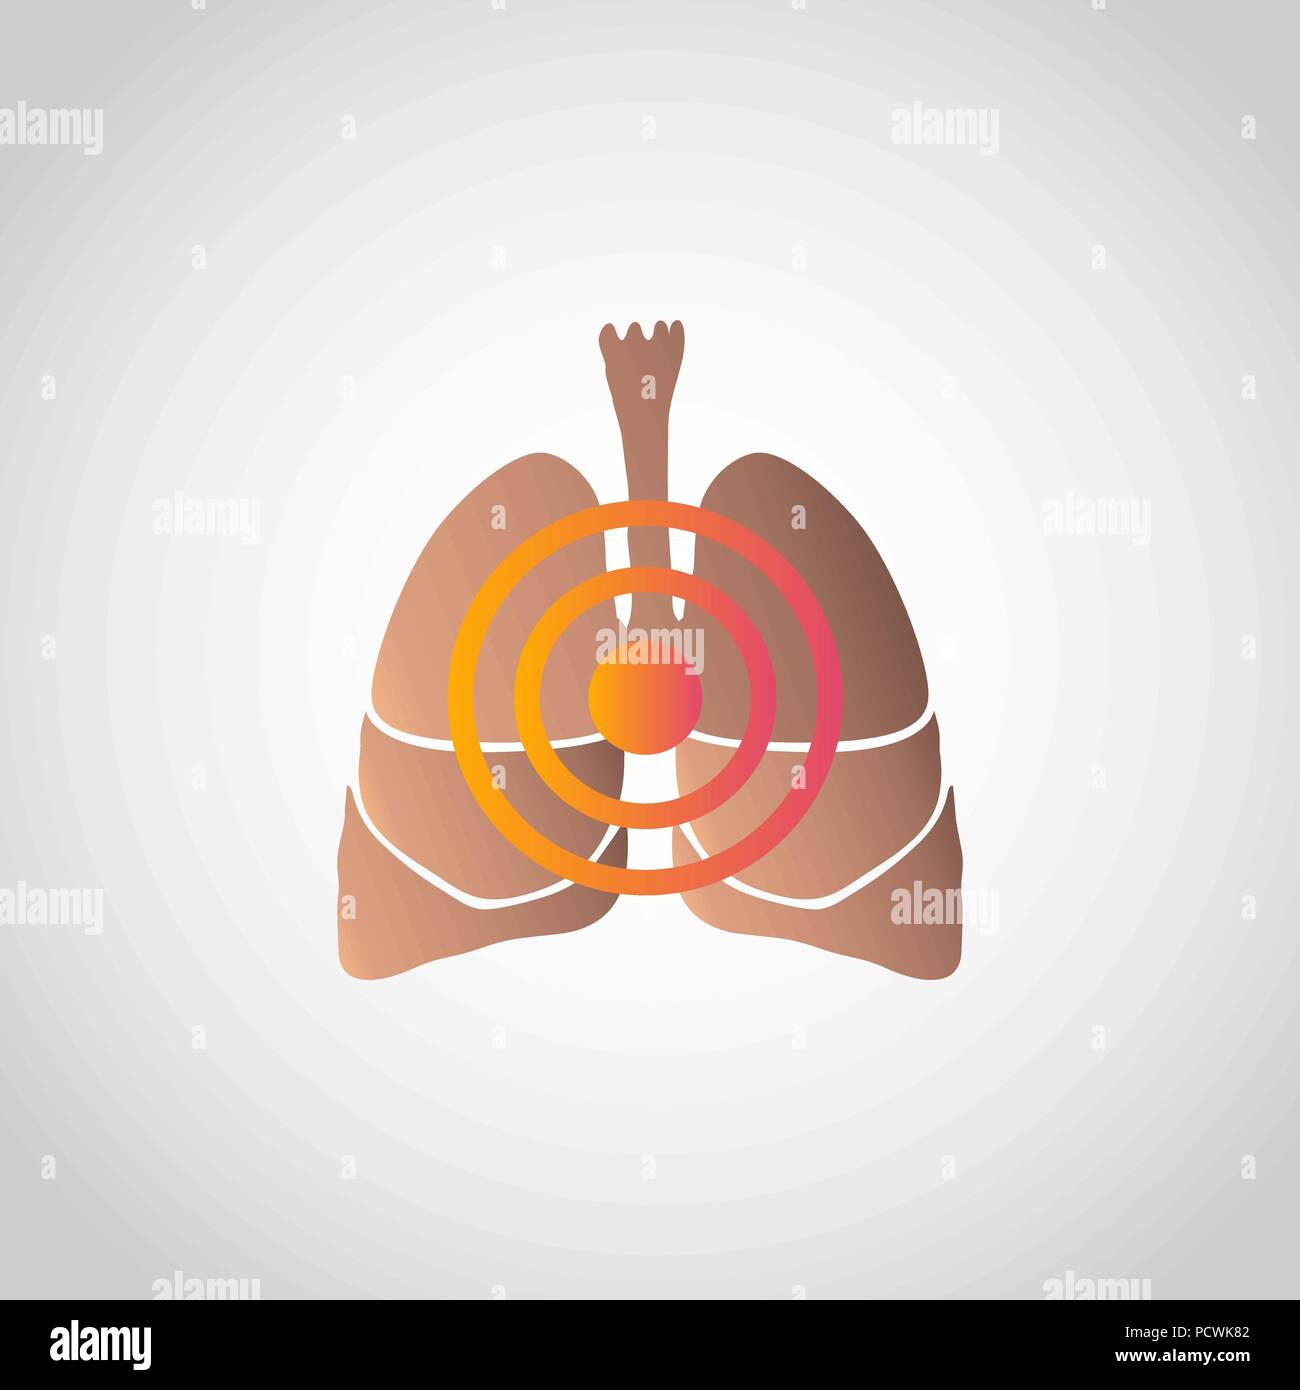 Short of Breath icon design, infographic health. Vector illustration. - Stock Image